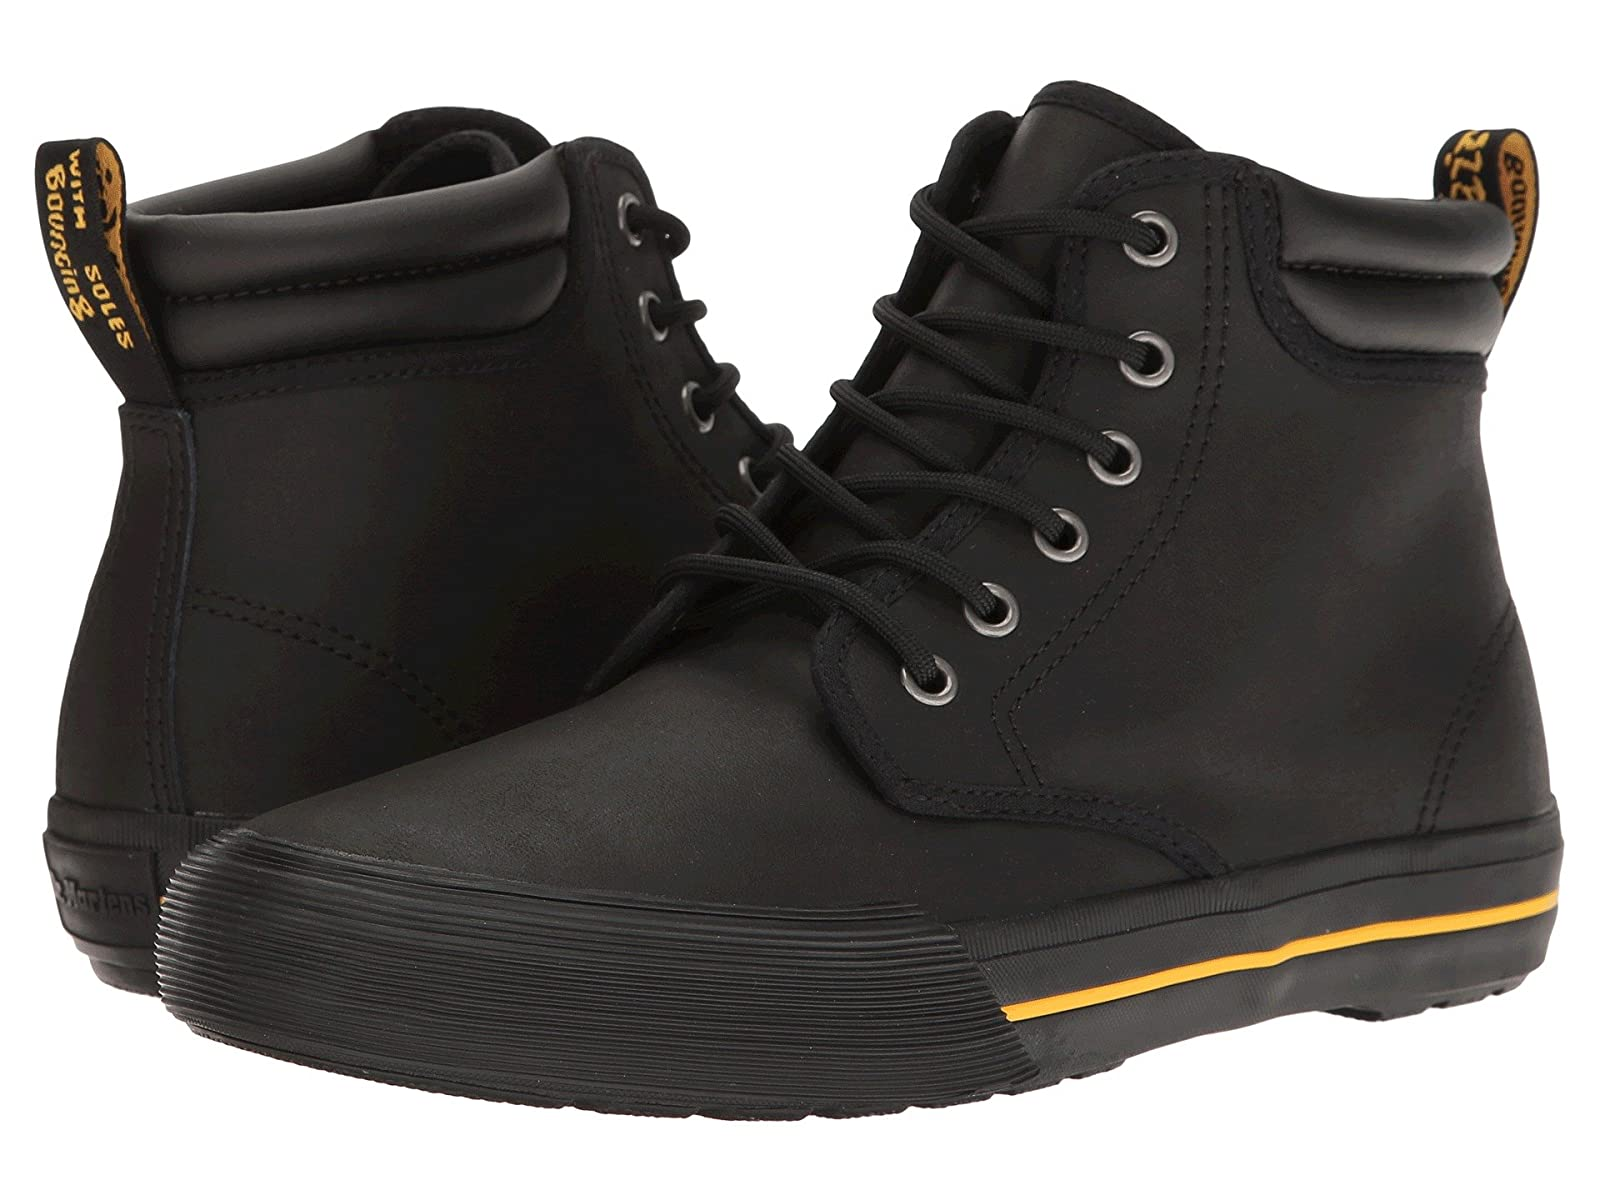 Dr. Martens EasonCheap and distinctive eye-catching shoes